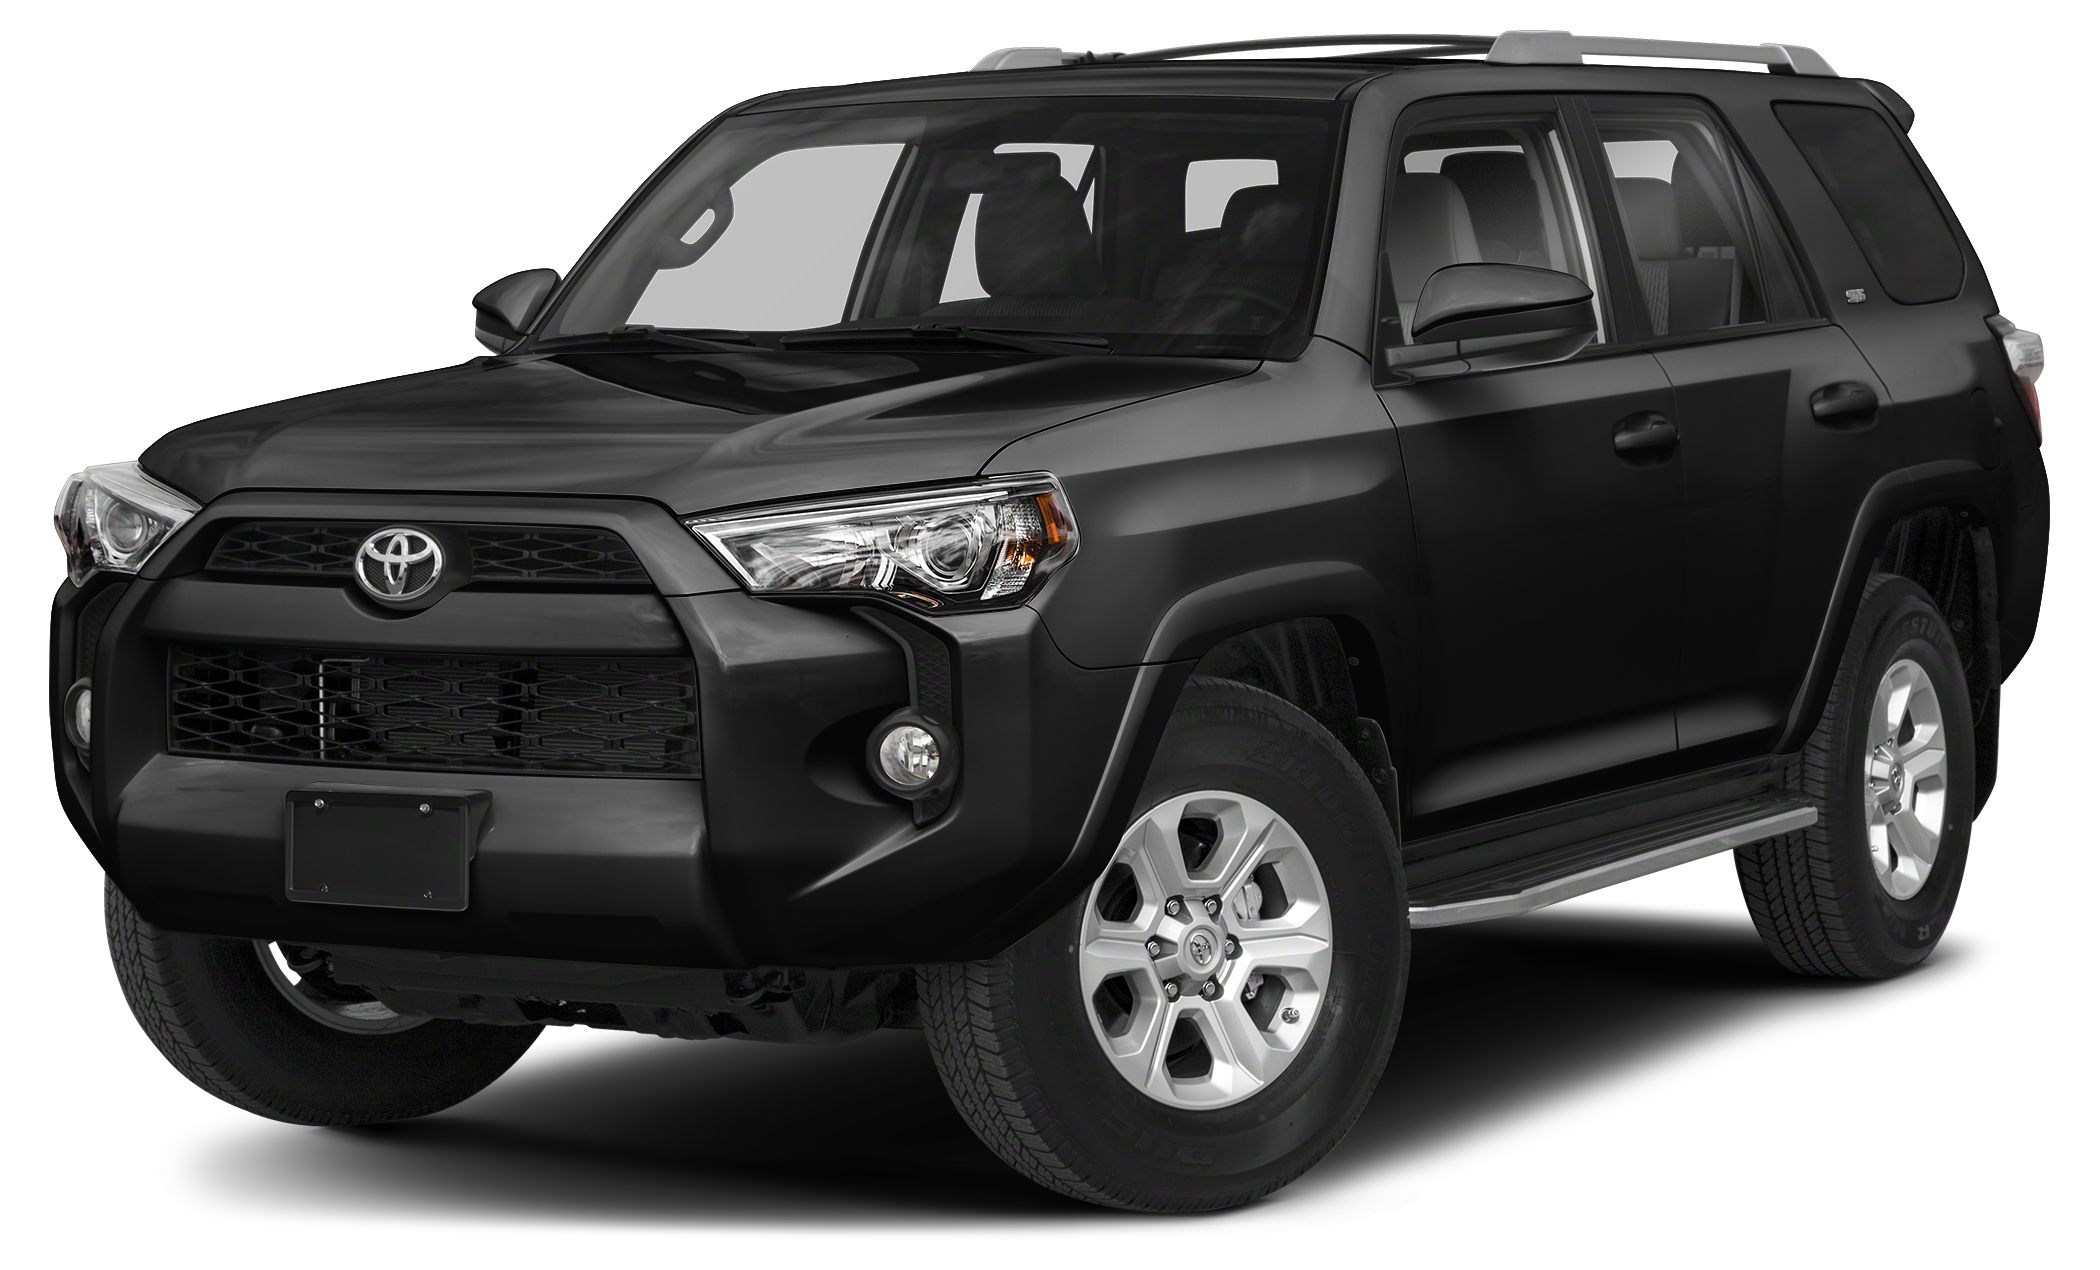 2017 Toyota 4Runner SR5 Premium Westboro Toyota is proud to present HASSLE FREE BUYING EXPERIENCE